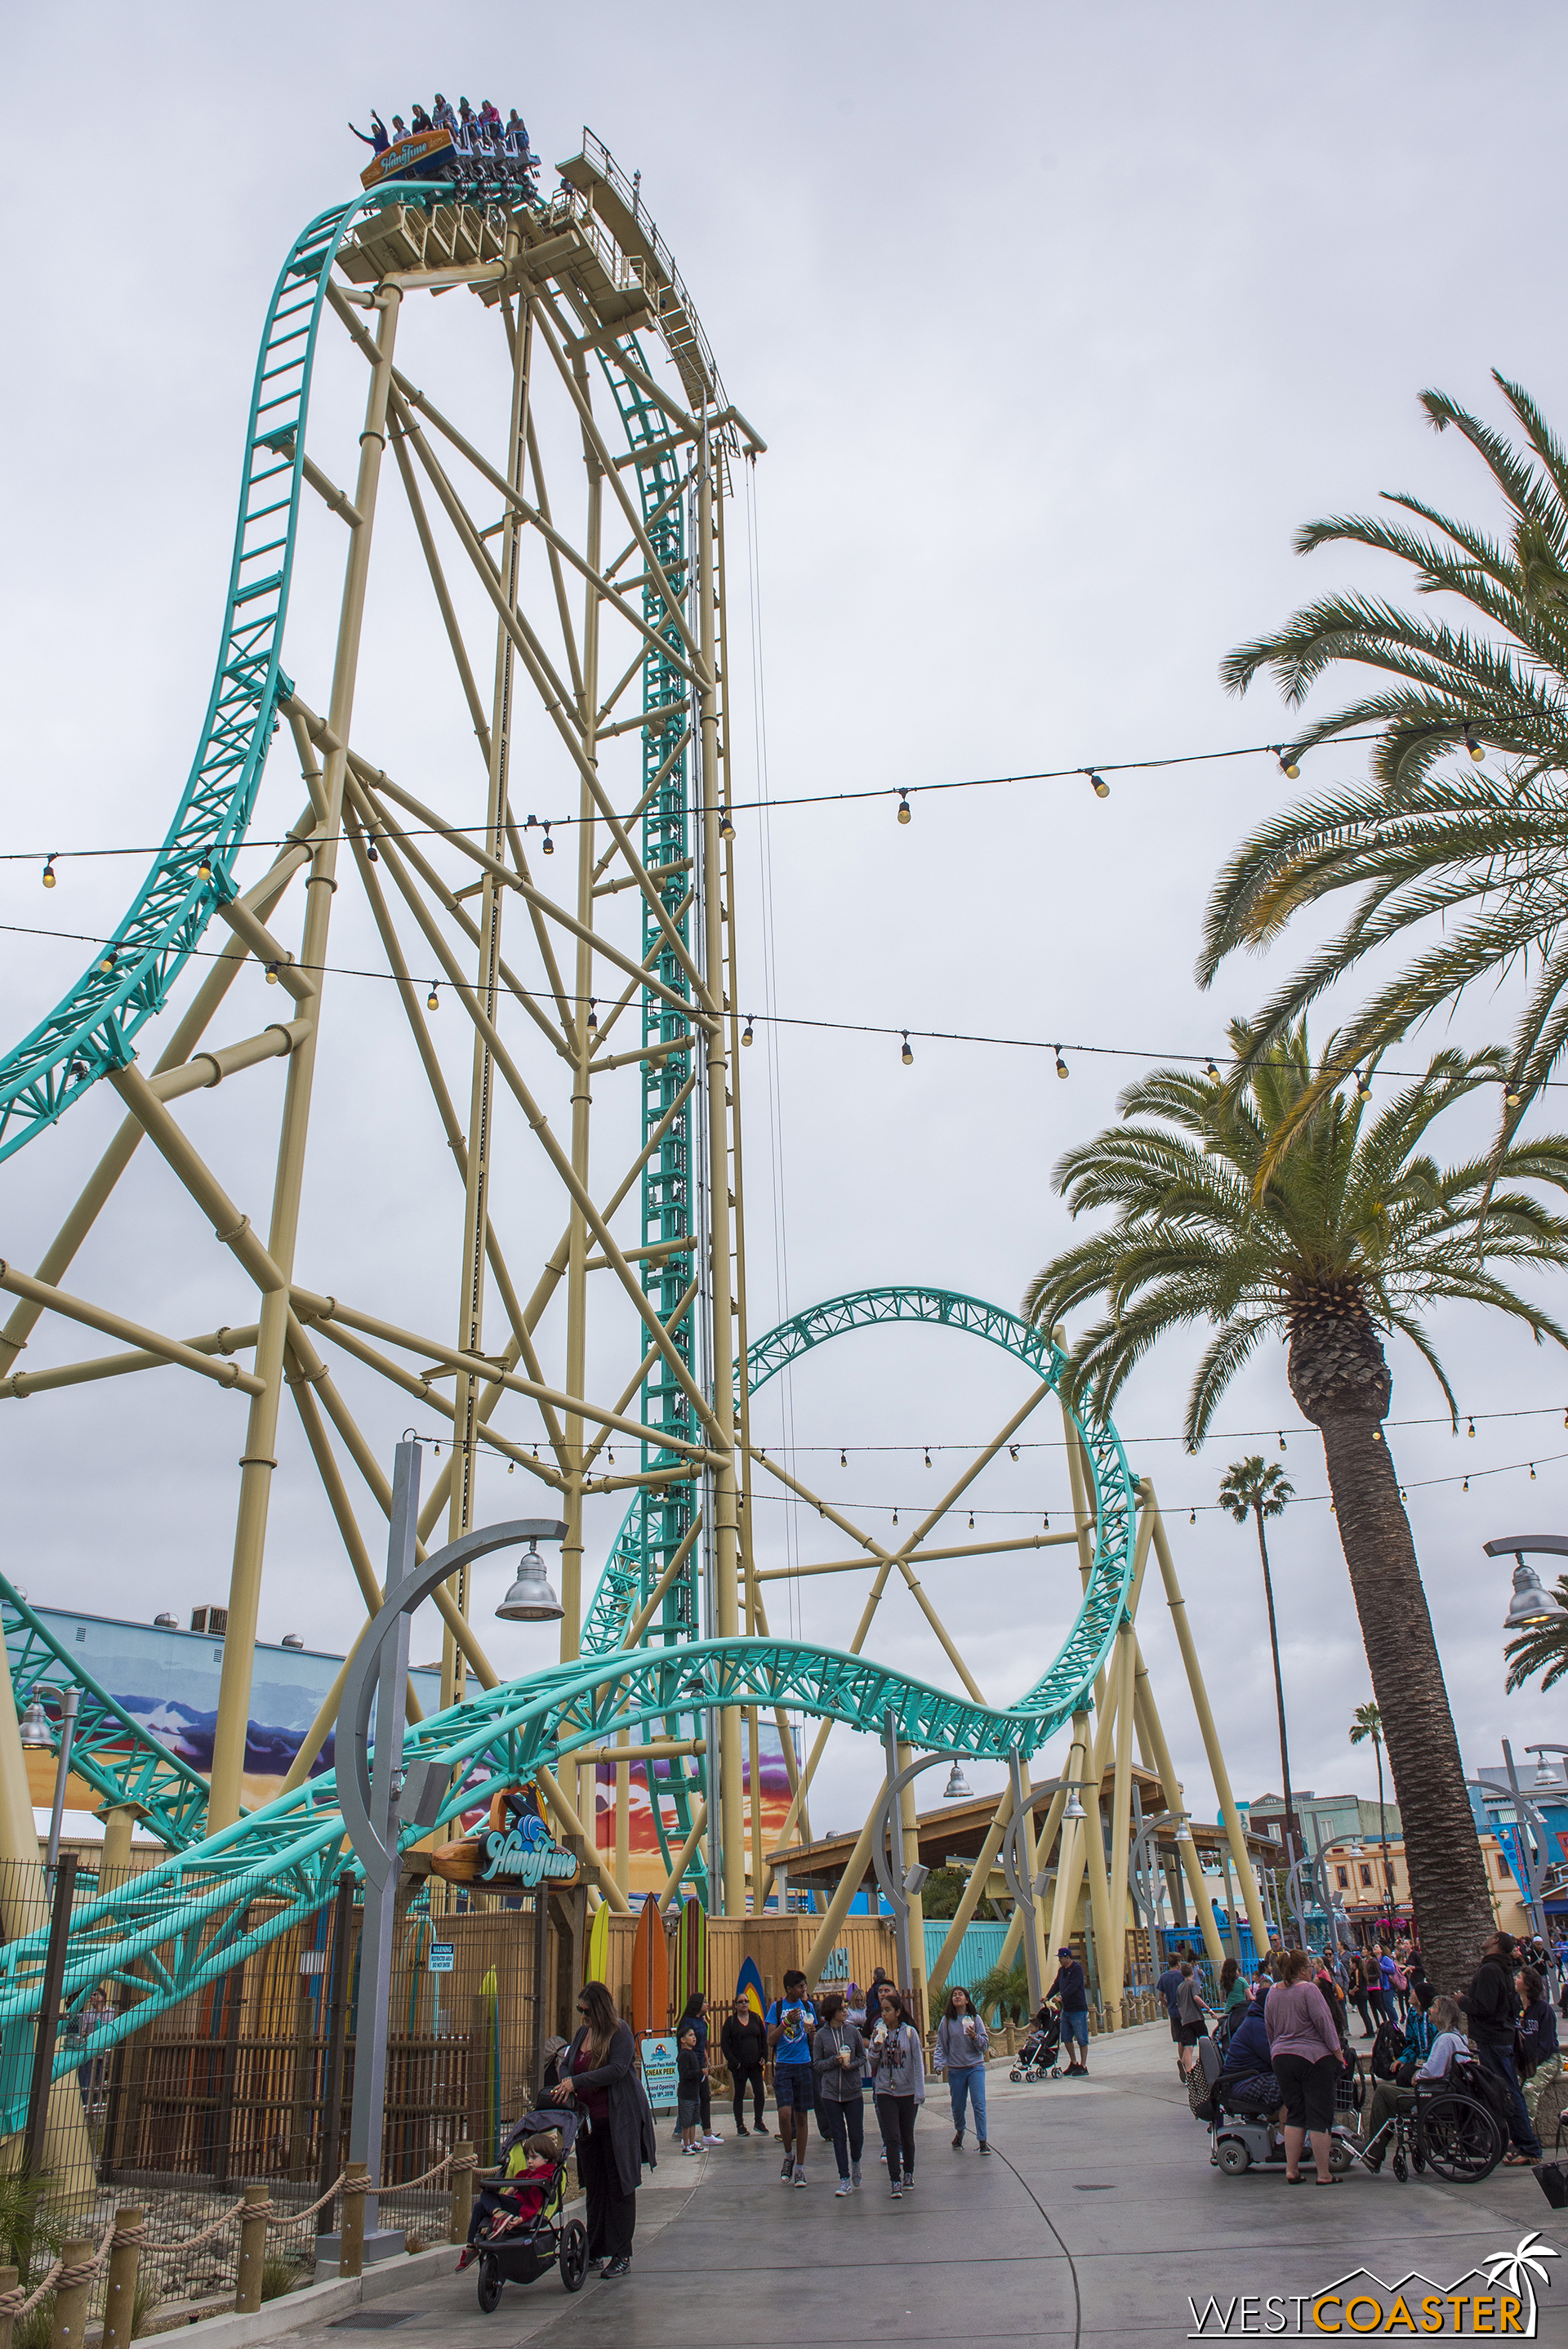 The day was crummy, but the ride looks nice!